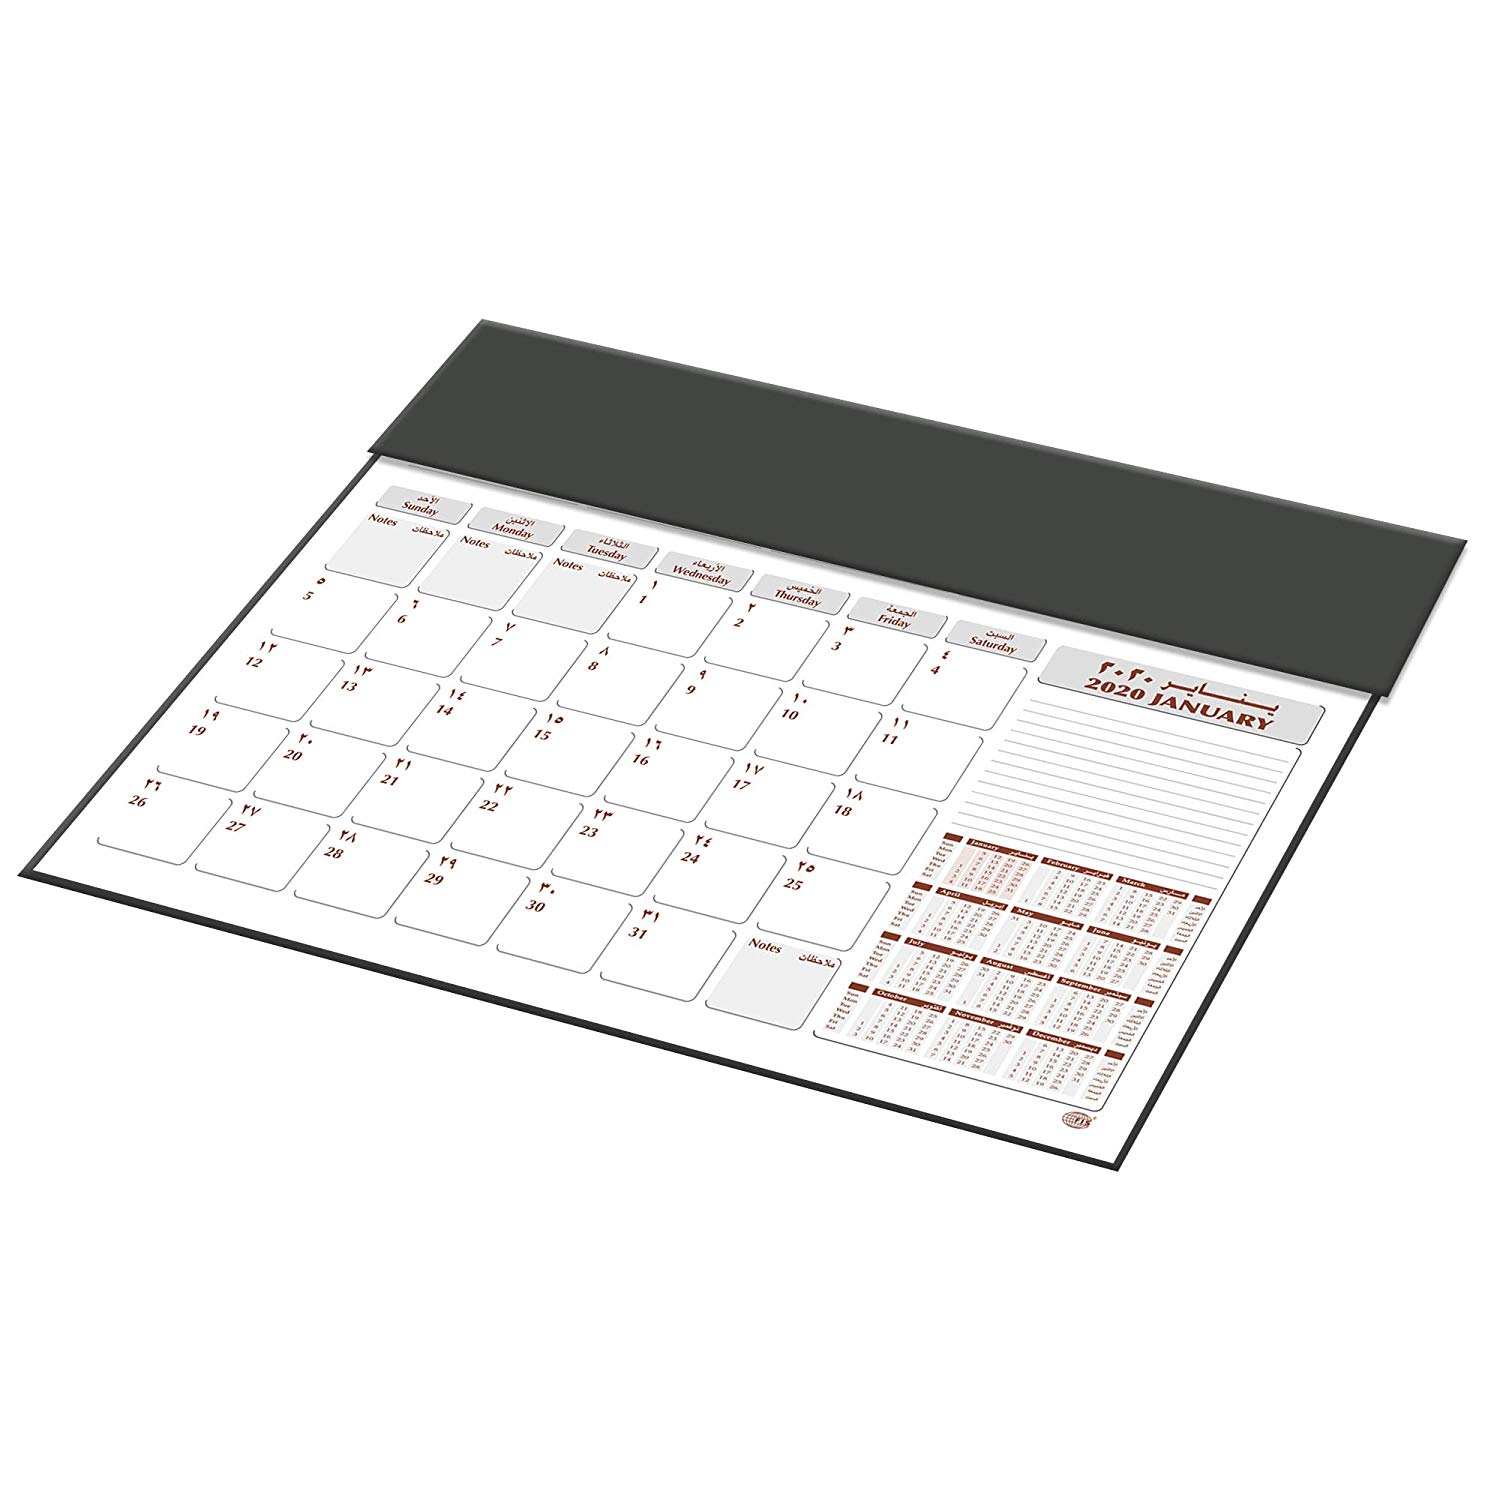 FIS FSDK2AE20BK 2020 Year Planner (Arabic/English) Italian PU w/ Desk Blotter 490x340mm - Black